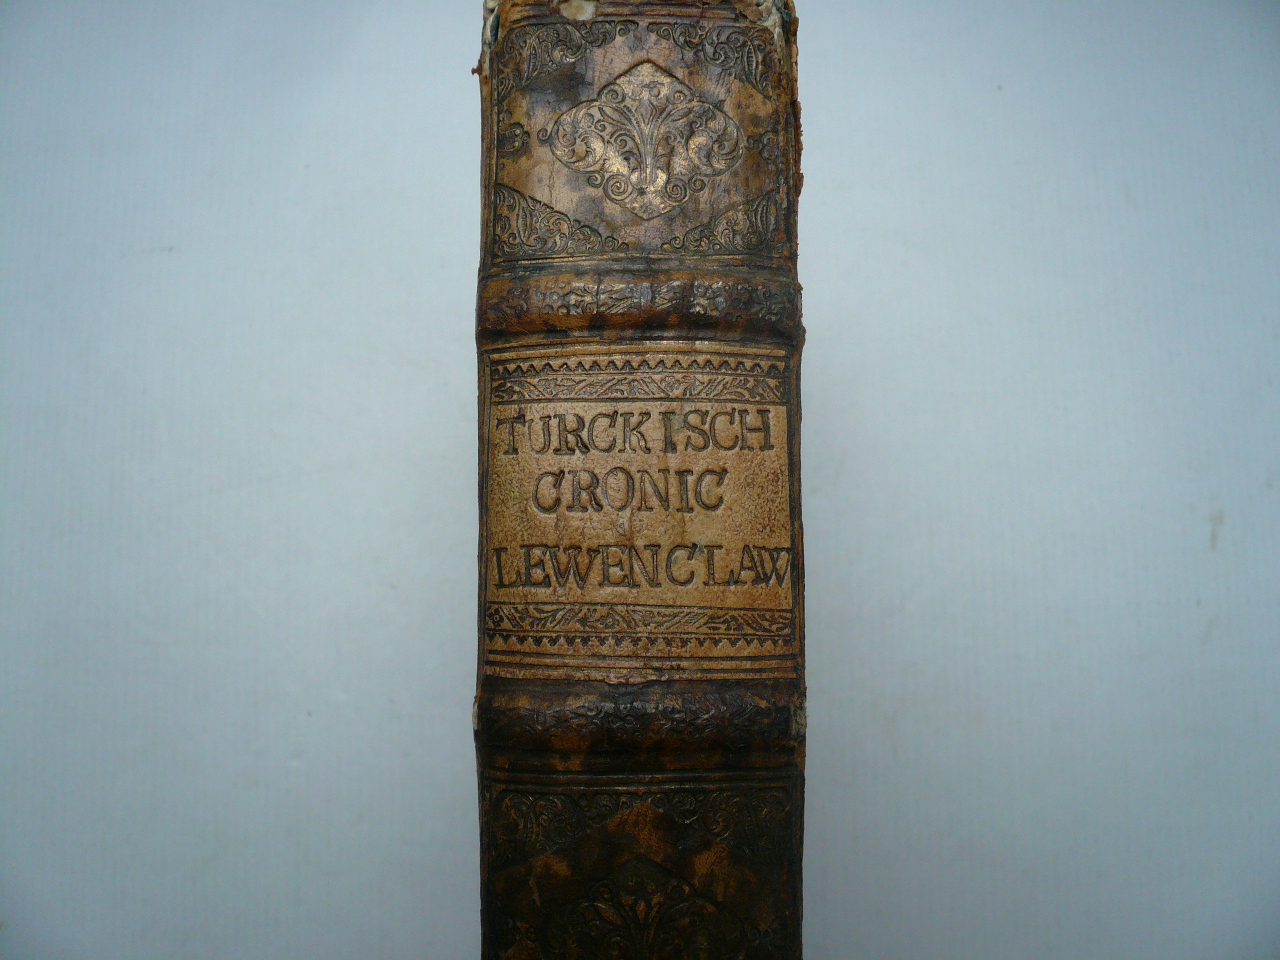 Neuwe Chronica Turckischer Nation, Lewenklau, 1 st. edition, 159